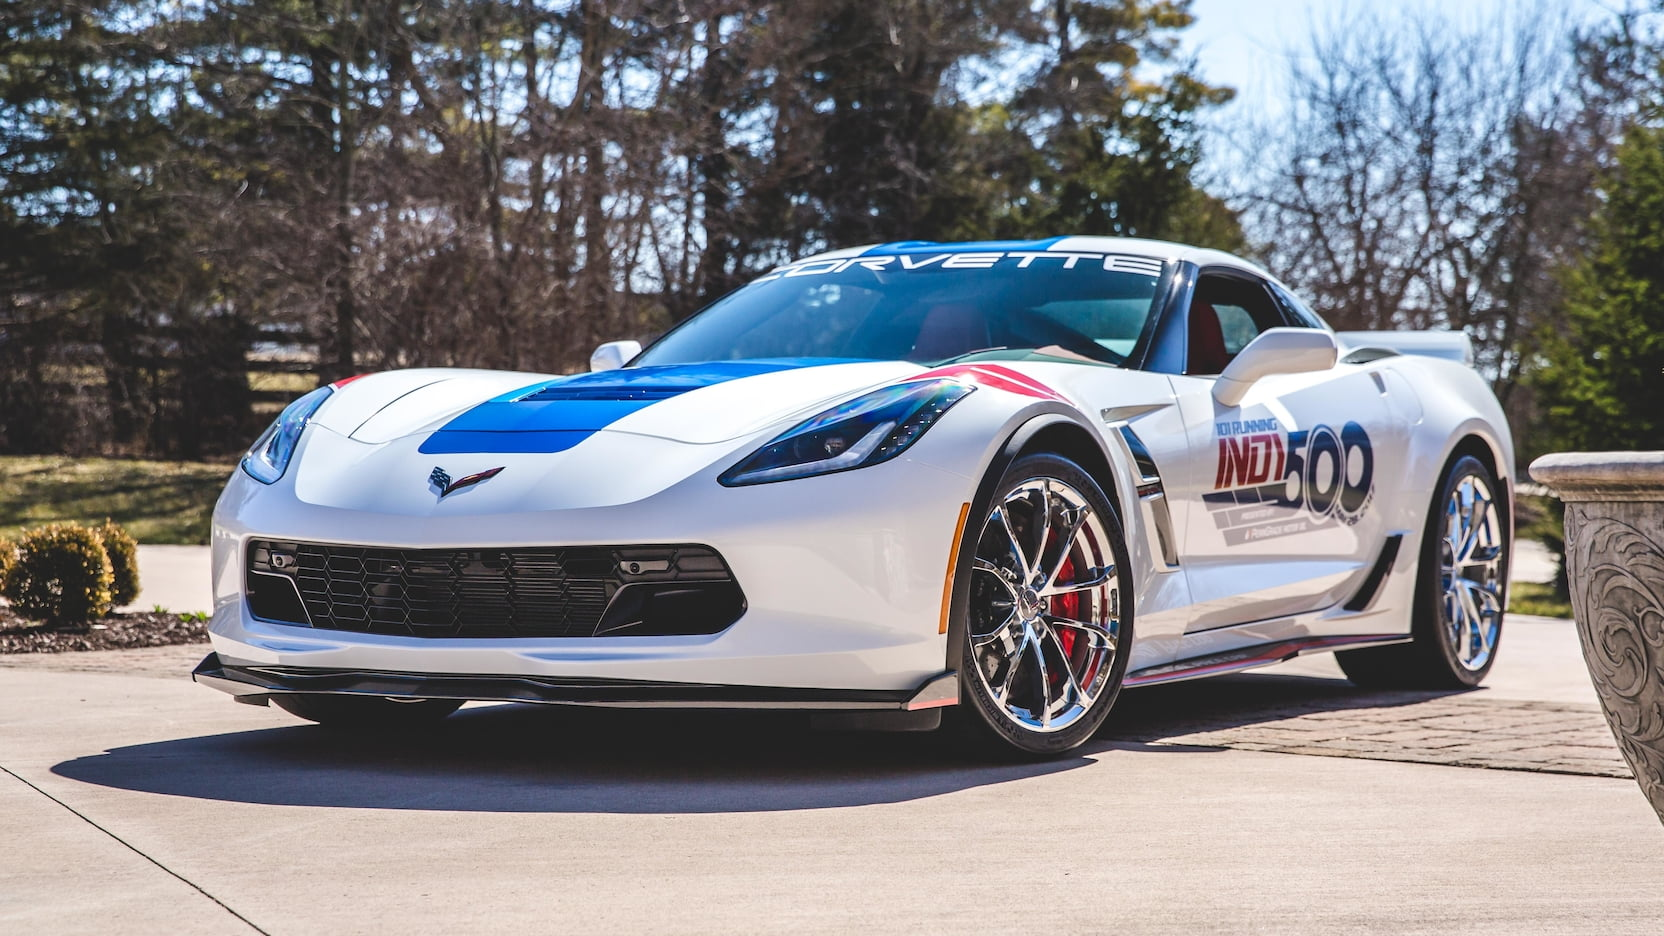 2017 Chevrolet Corvette Grand Sport Pace Car Edition Front 3/4